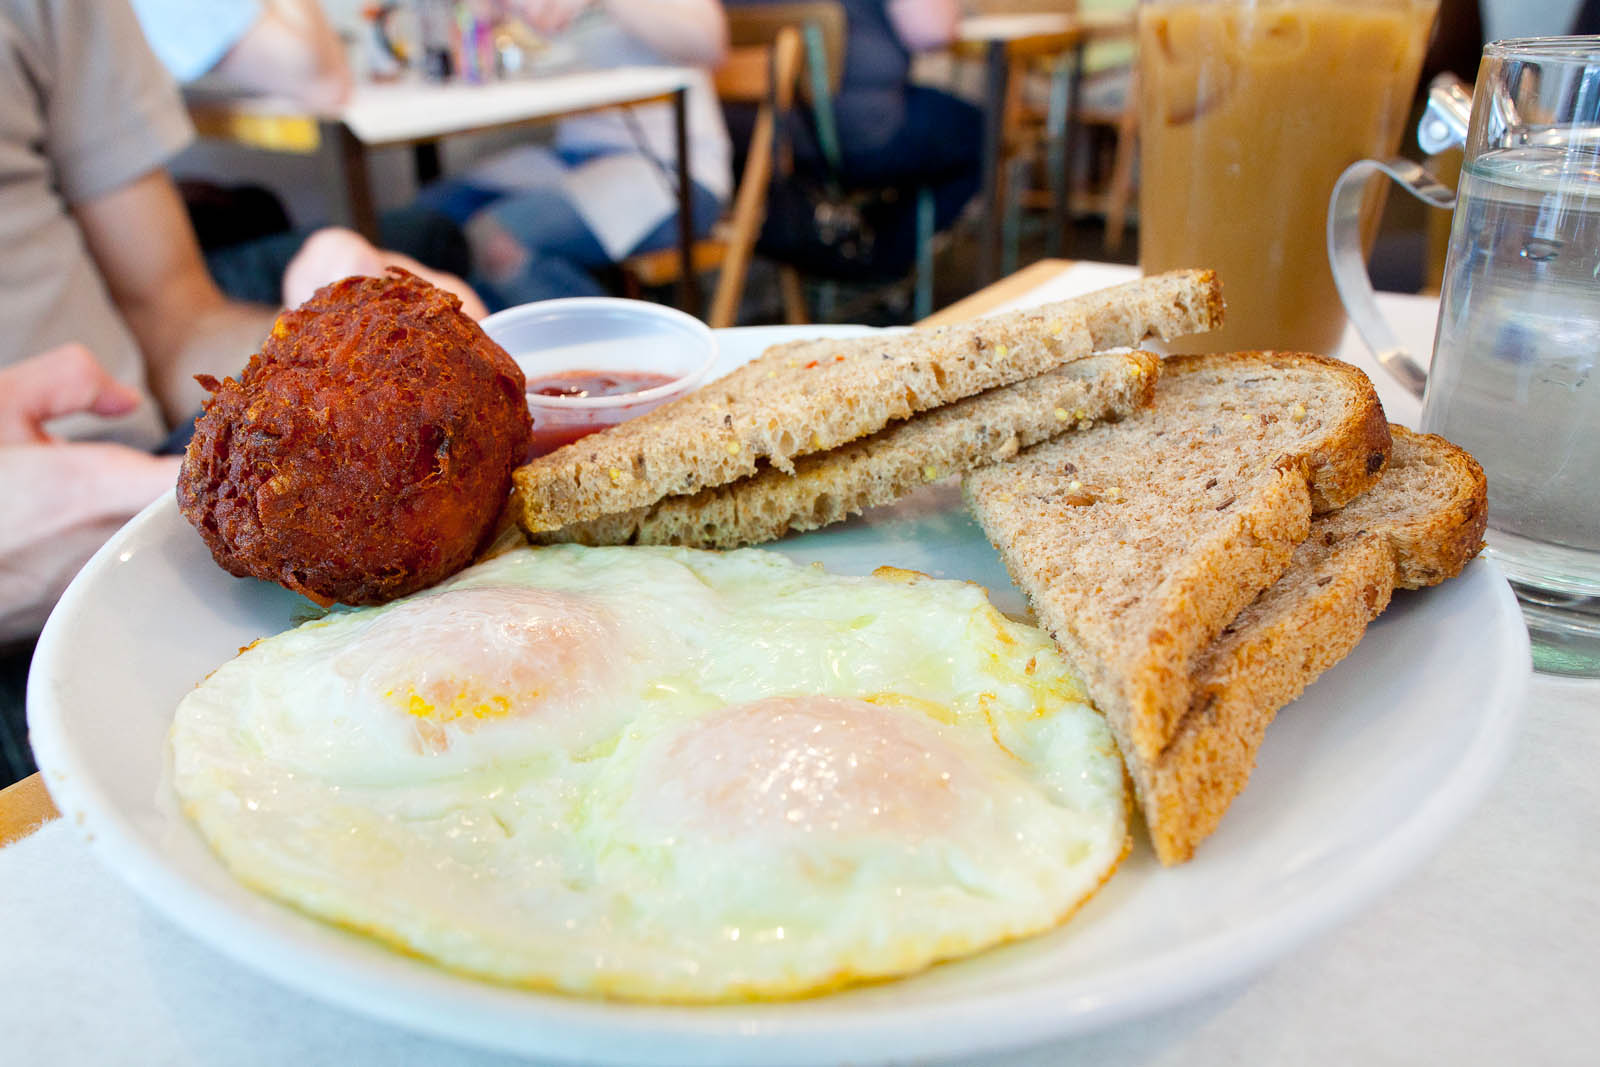 Two eggs over easy with 5-grain toast and hashbrowns ($8.50)